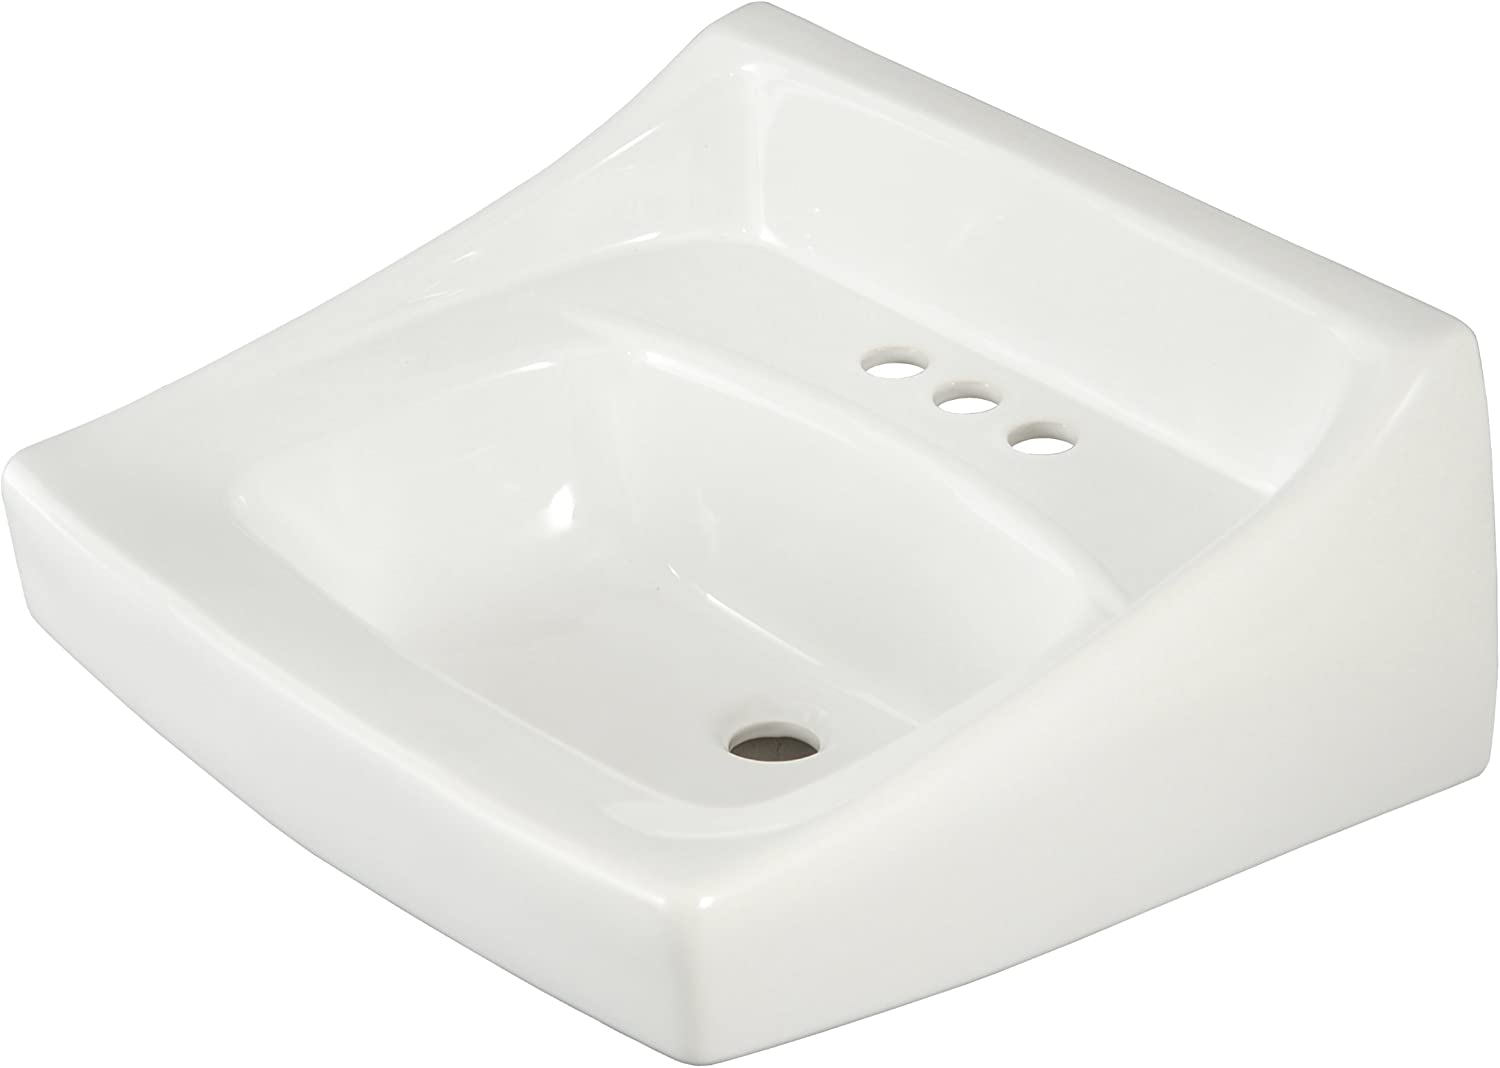 Toto LT307.4#01 4 CTR Wall Mount Lavatory Inch Centerset Cotton White